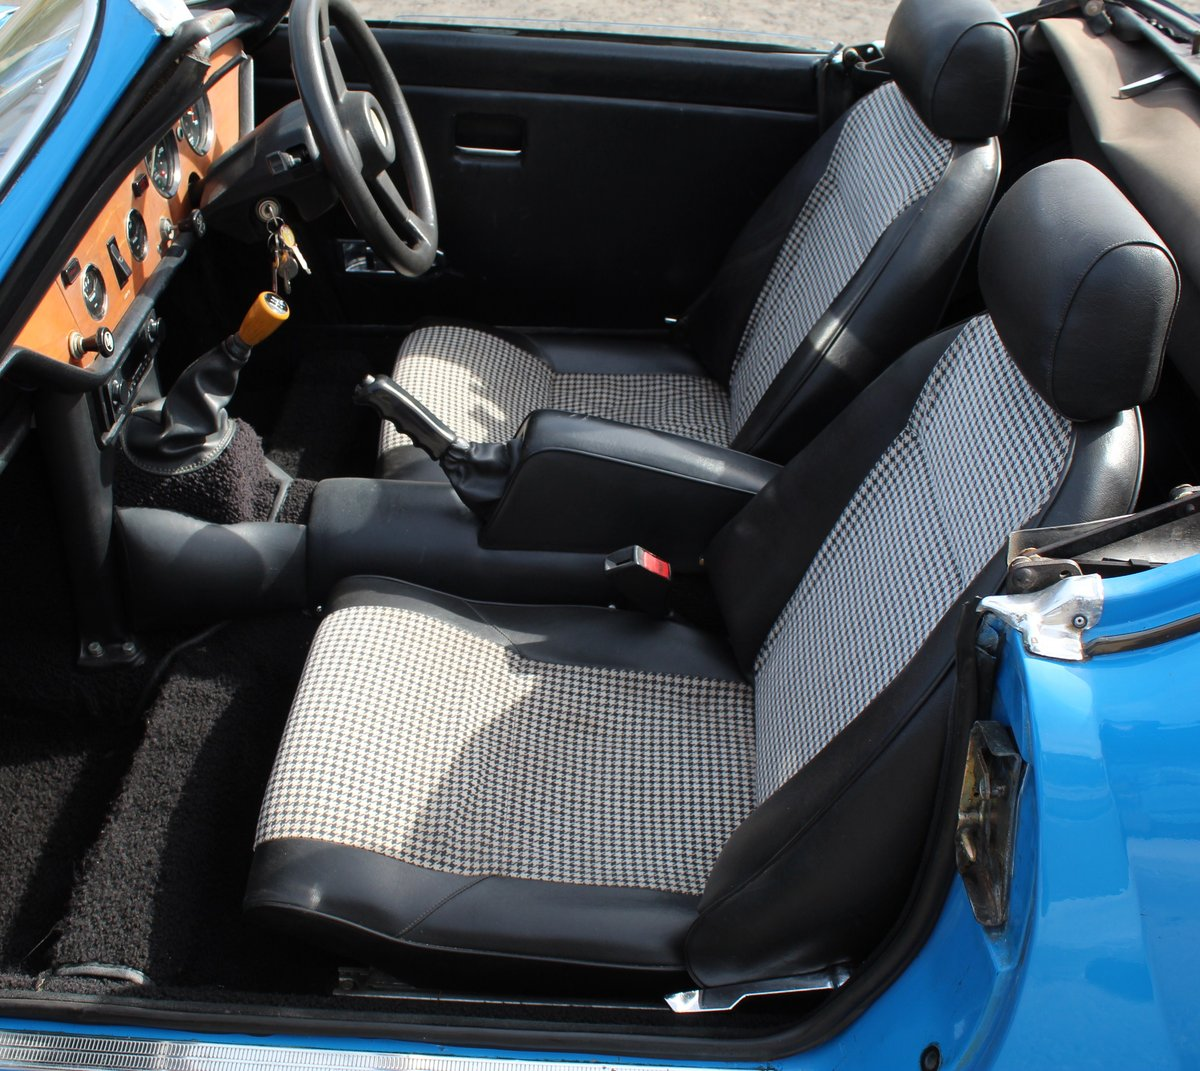 1980 Triumph Spitfire 1500 67,156 miles with 4 Owners SOLD (picture 4 of 6)